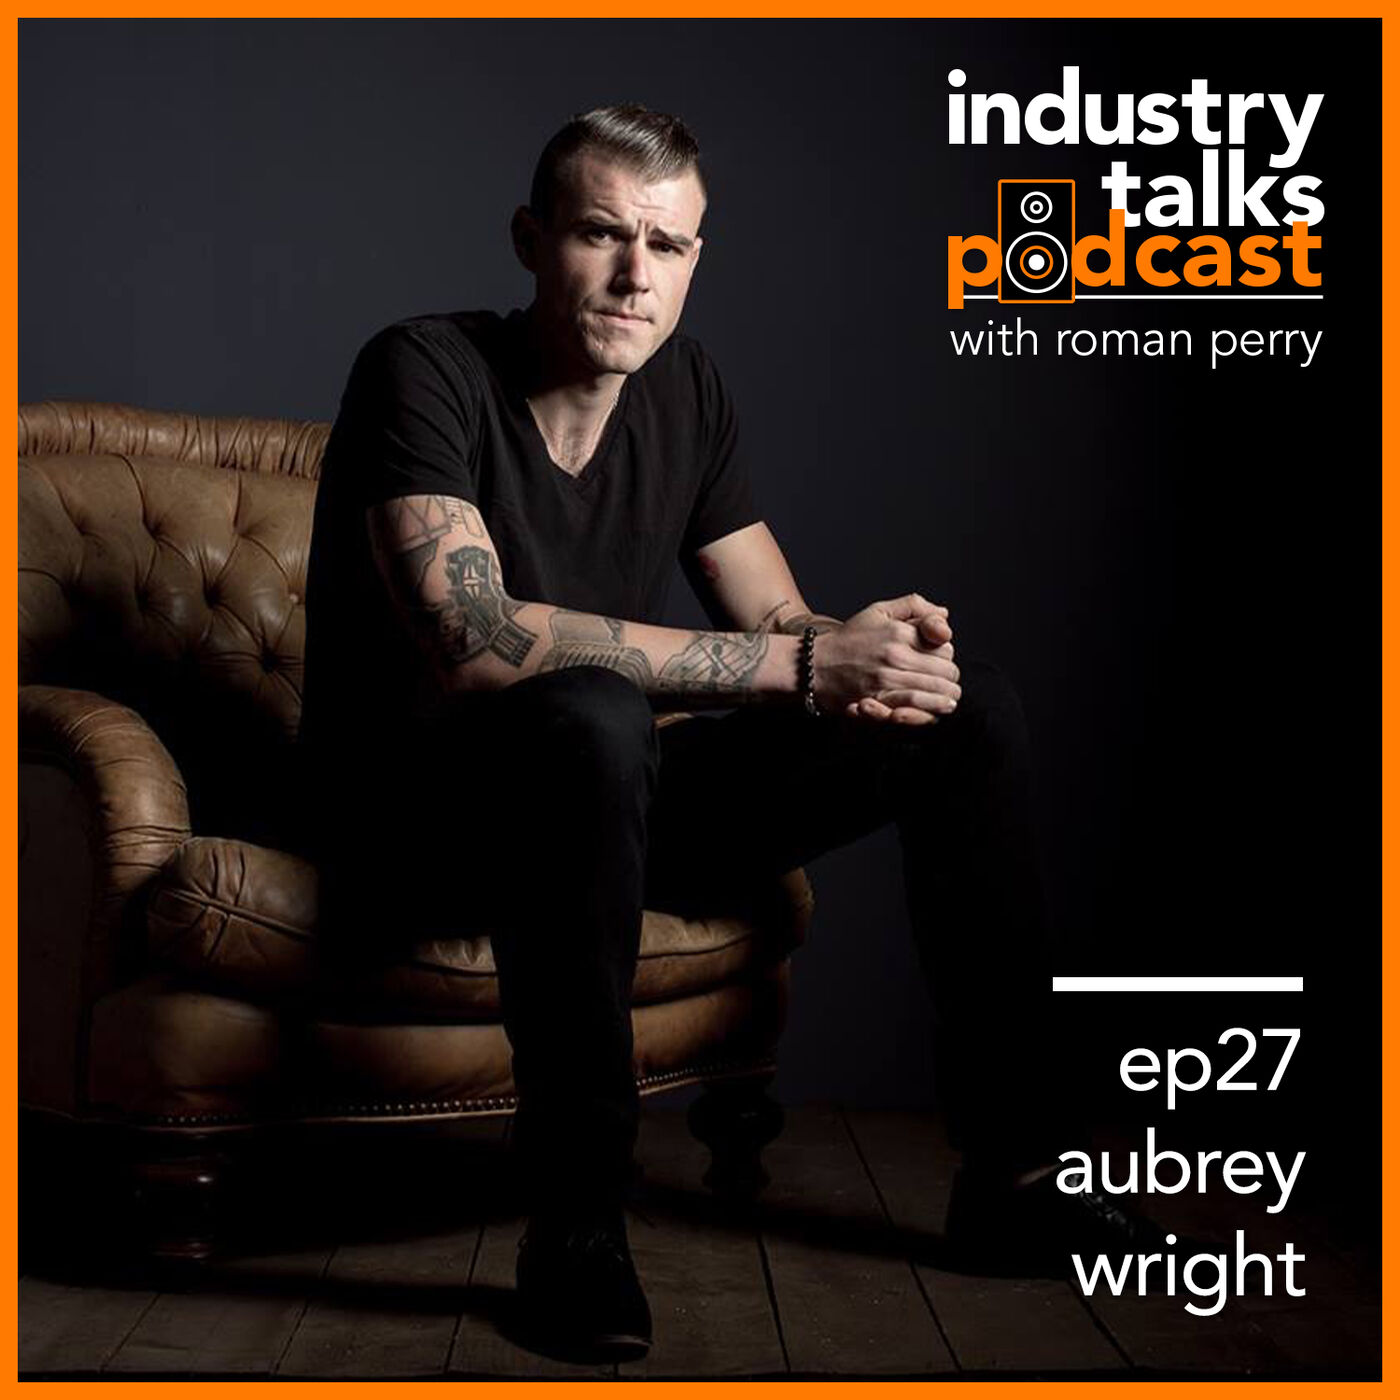 Industry Talks Podcast ep27 - Aubrey Wright on How to Survive the Touring Lifestyle